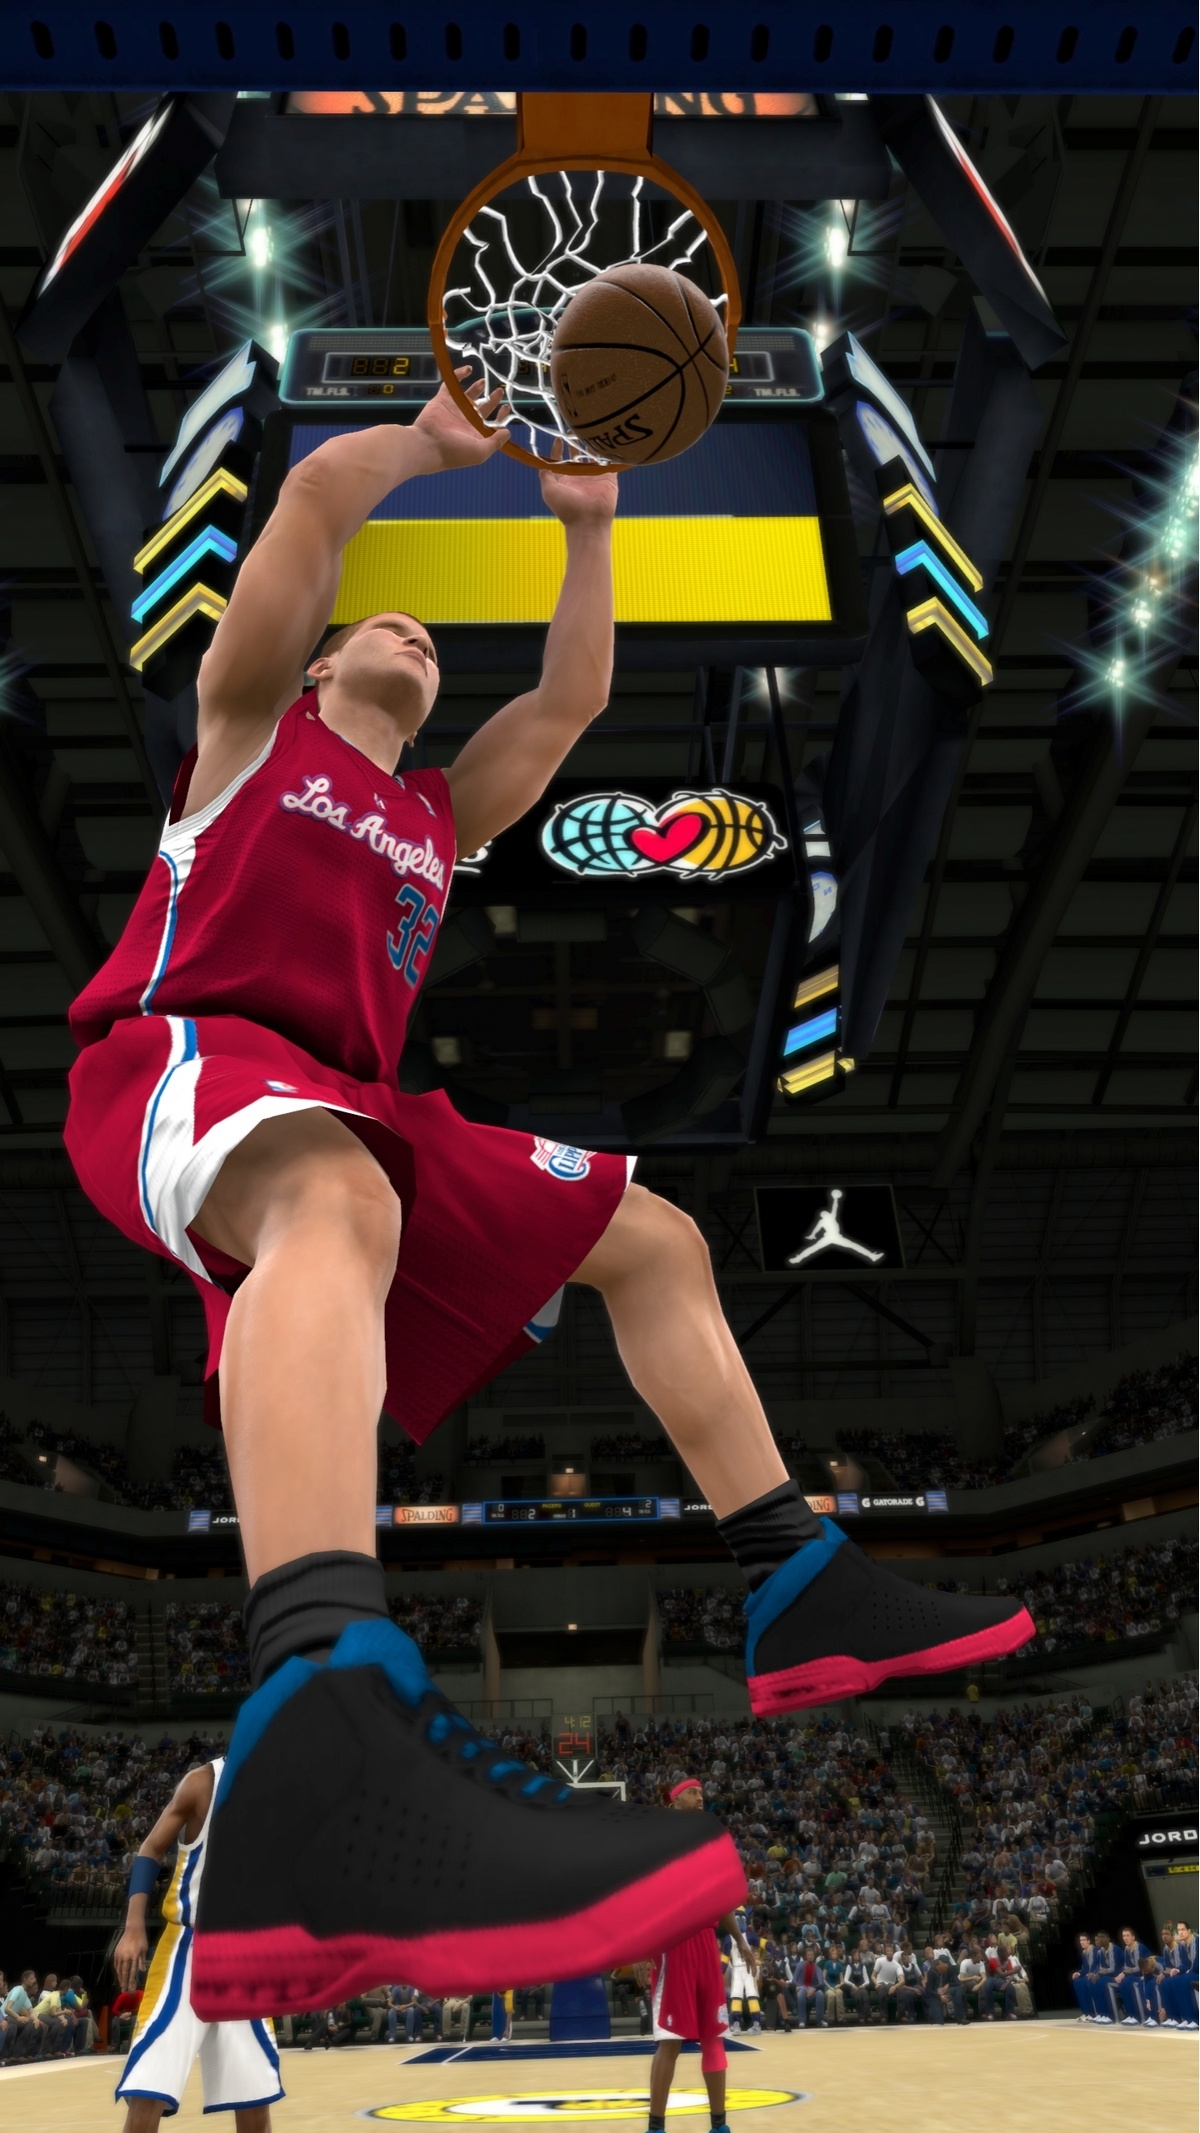 More NBA 2K11 Screenshots Recently (HD Version)